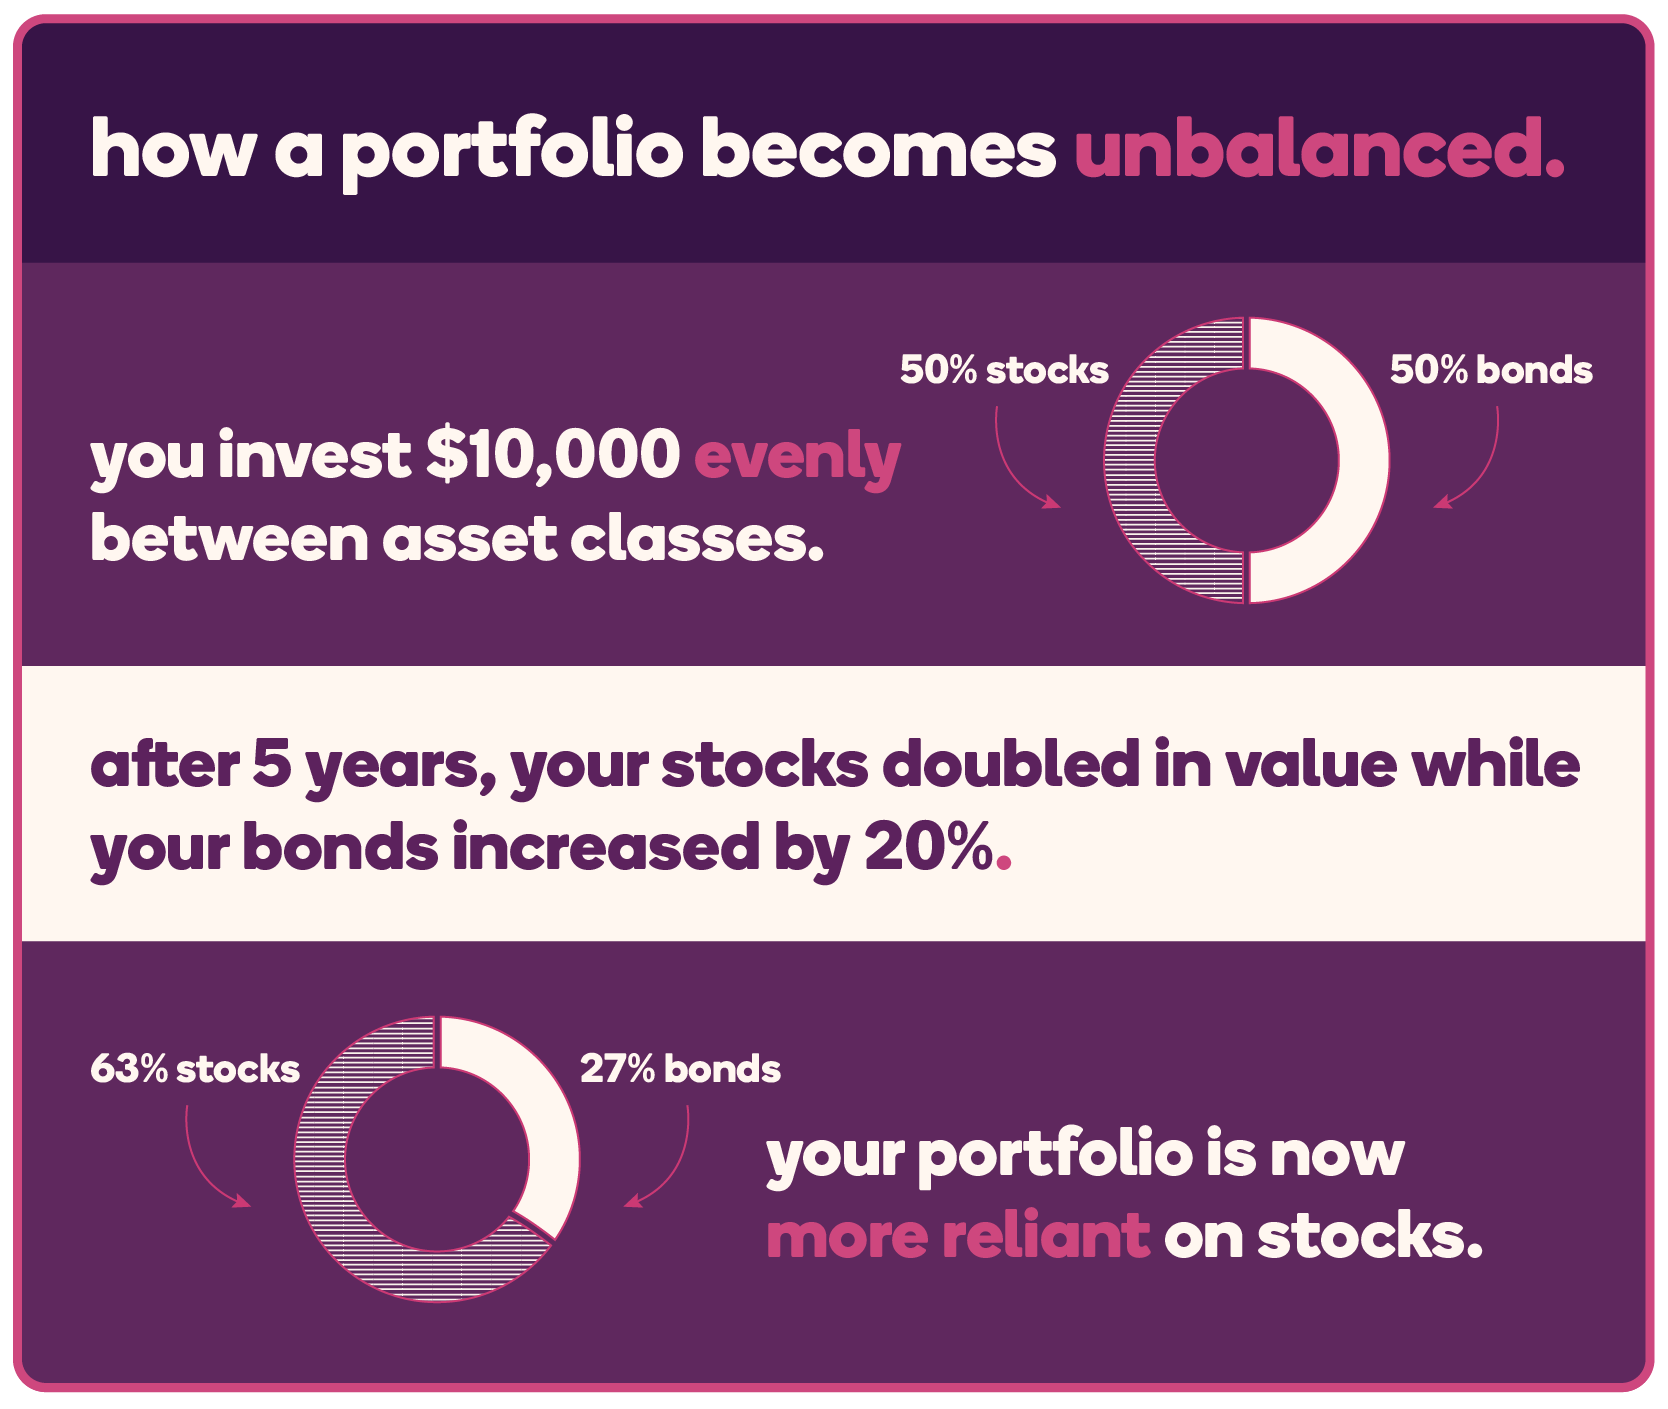 The graphic shows an example of how a portfolio becomes unbalanced. The first step shows the a circle divided in half with a $10,000 value, 50% stocks and 50% bonds. After 5 years, the graphic says that your stocks doubled in value while your bonds increased by 20%. The graphic circle then shows how the mix has changed to 63% stocks and 27% bonds, demonstrating that the portfolio is now reliant on stocks.